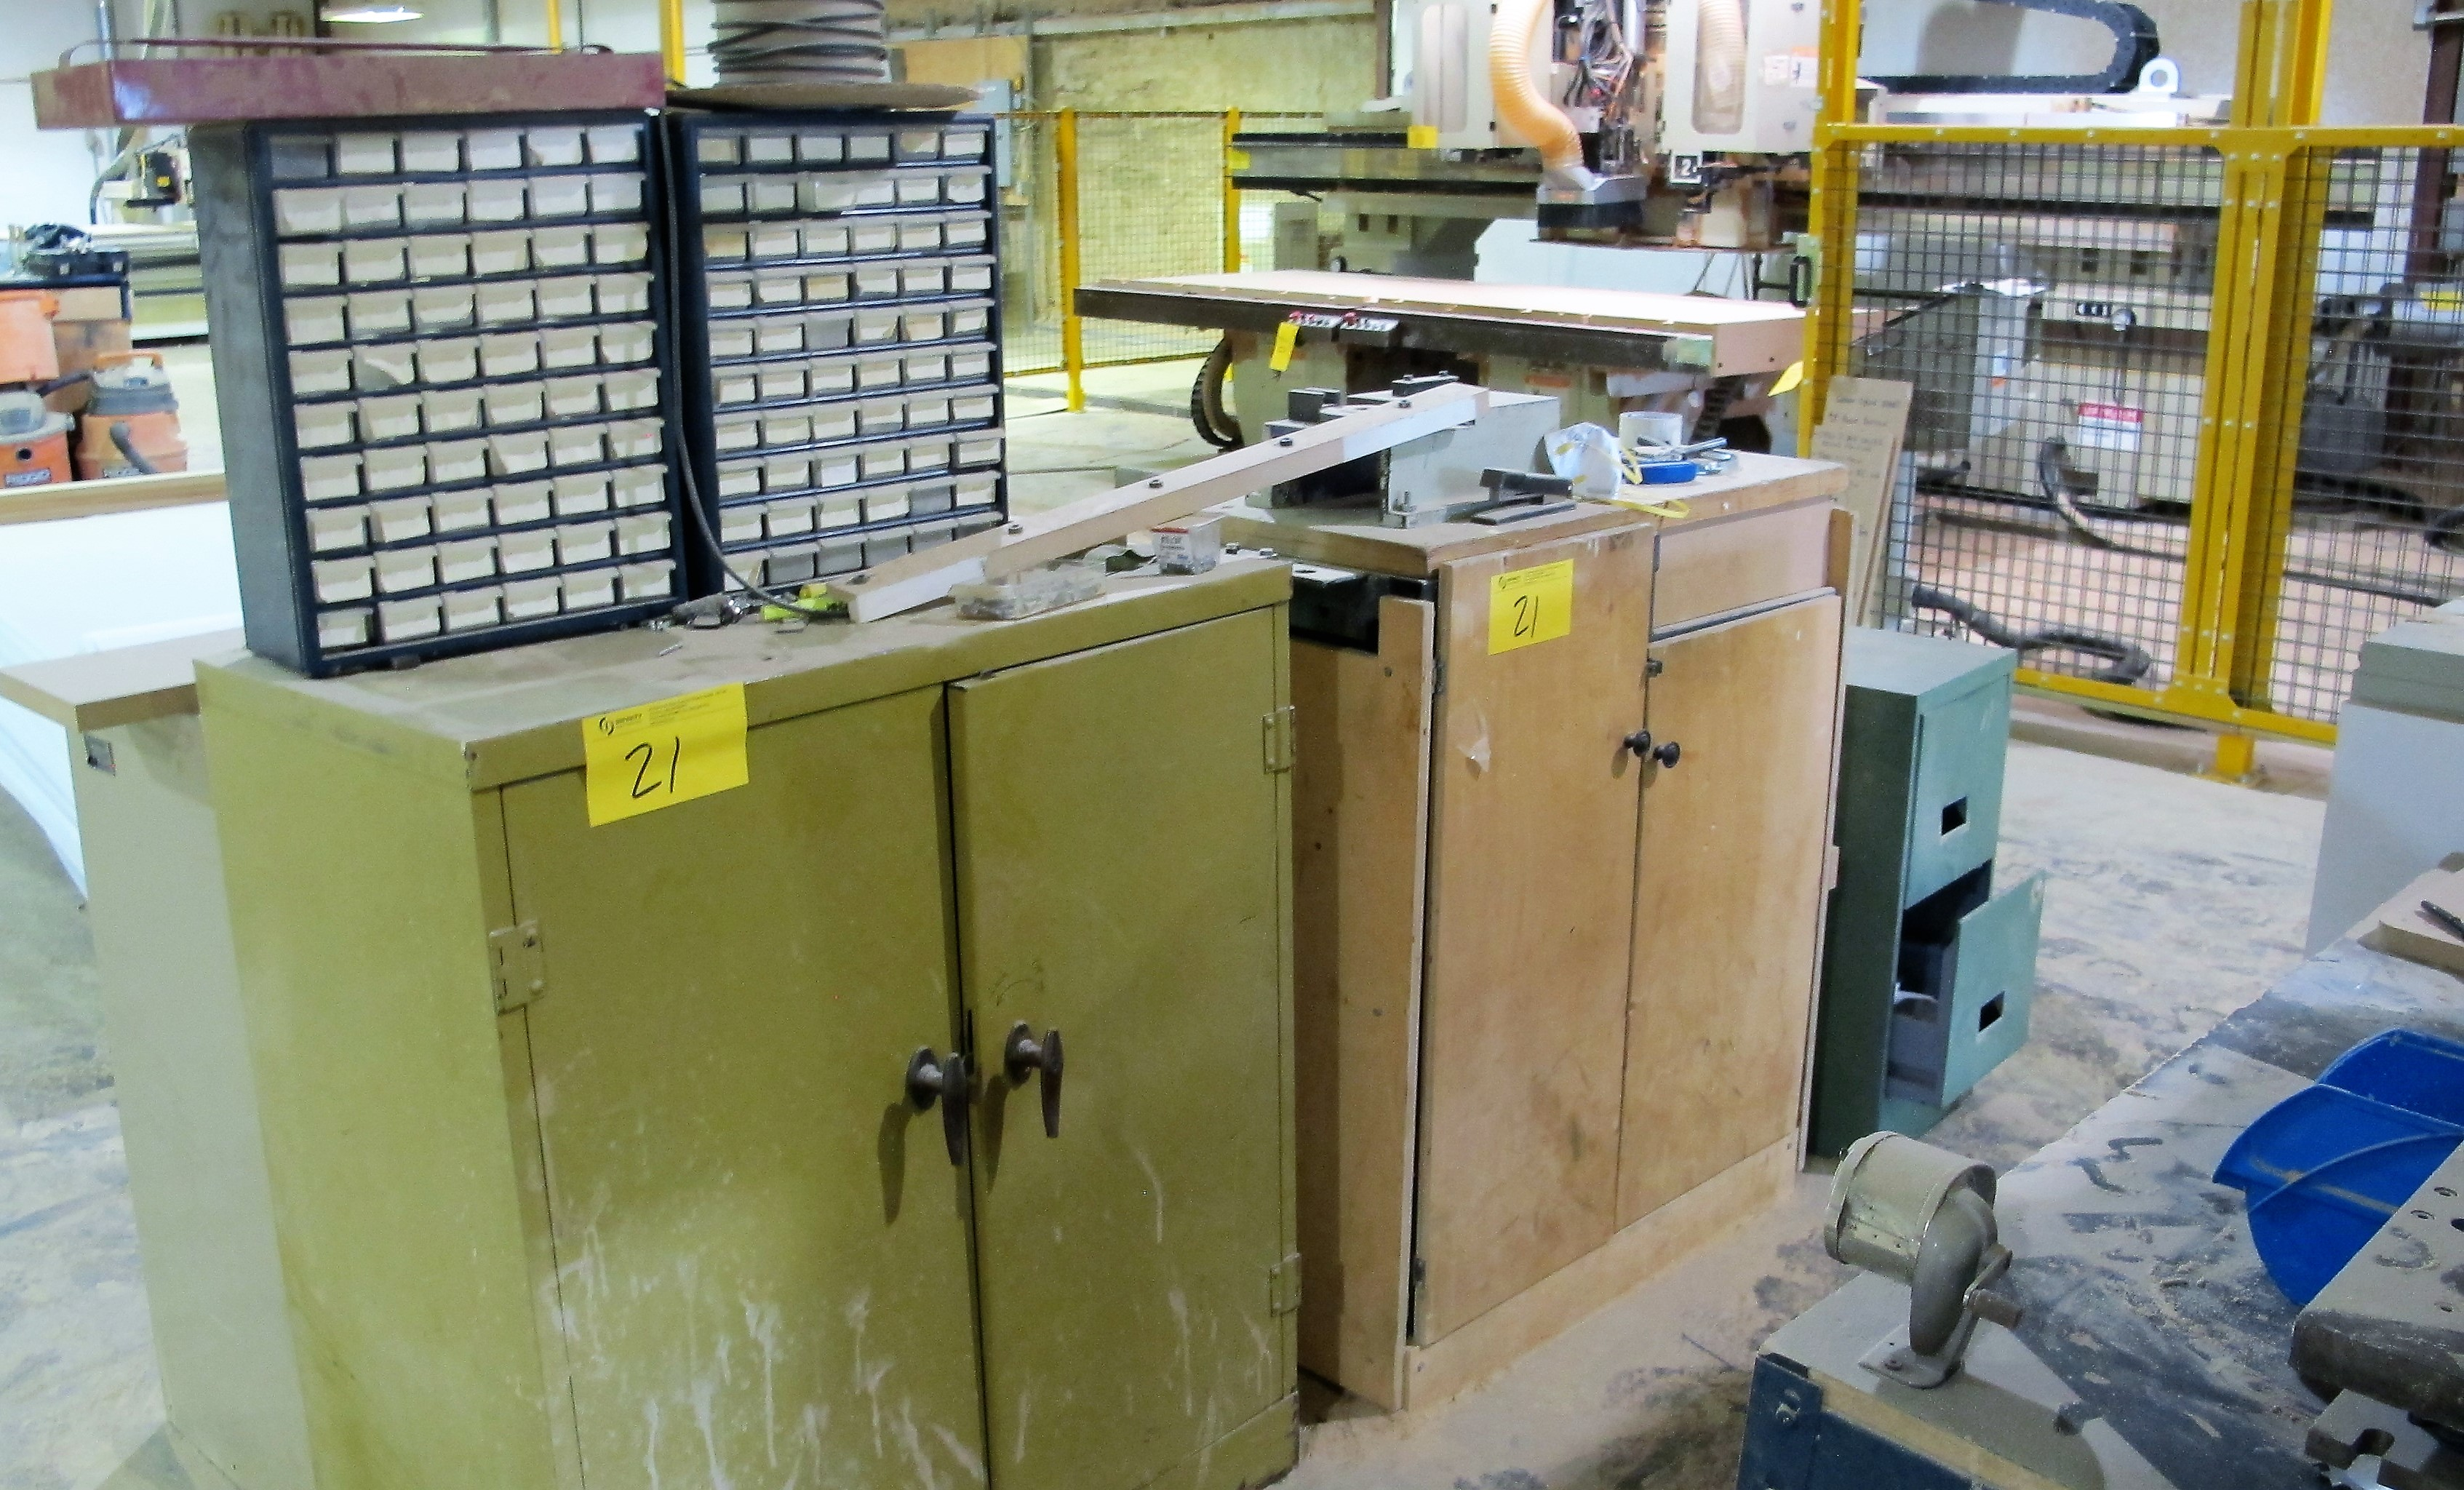 Lot 21 - LOT OF ASST. WORKBENCHES, METAL STORAGE CABINETS W/ CONTENTS, CUTTERS, PORTABLE LIGHT, ETC.